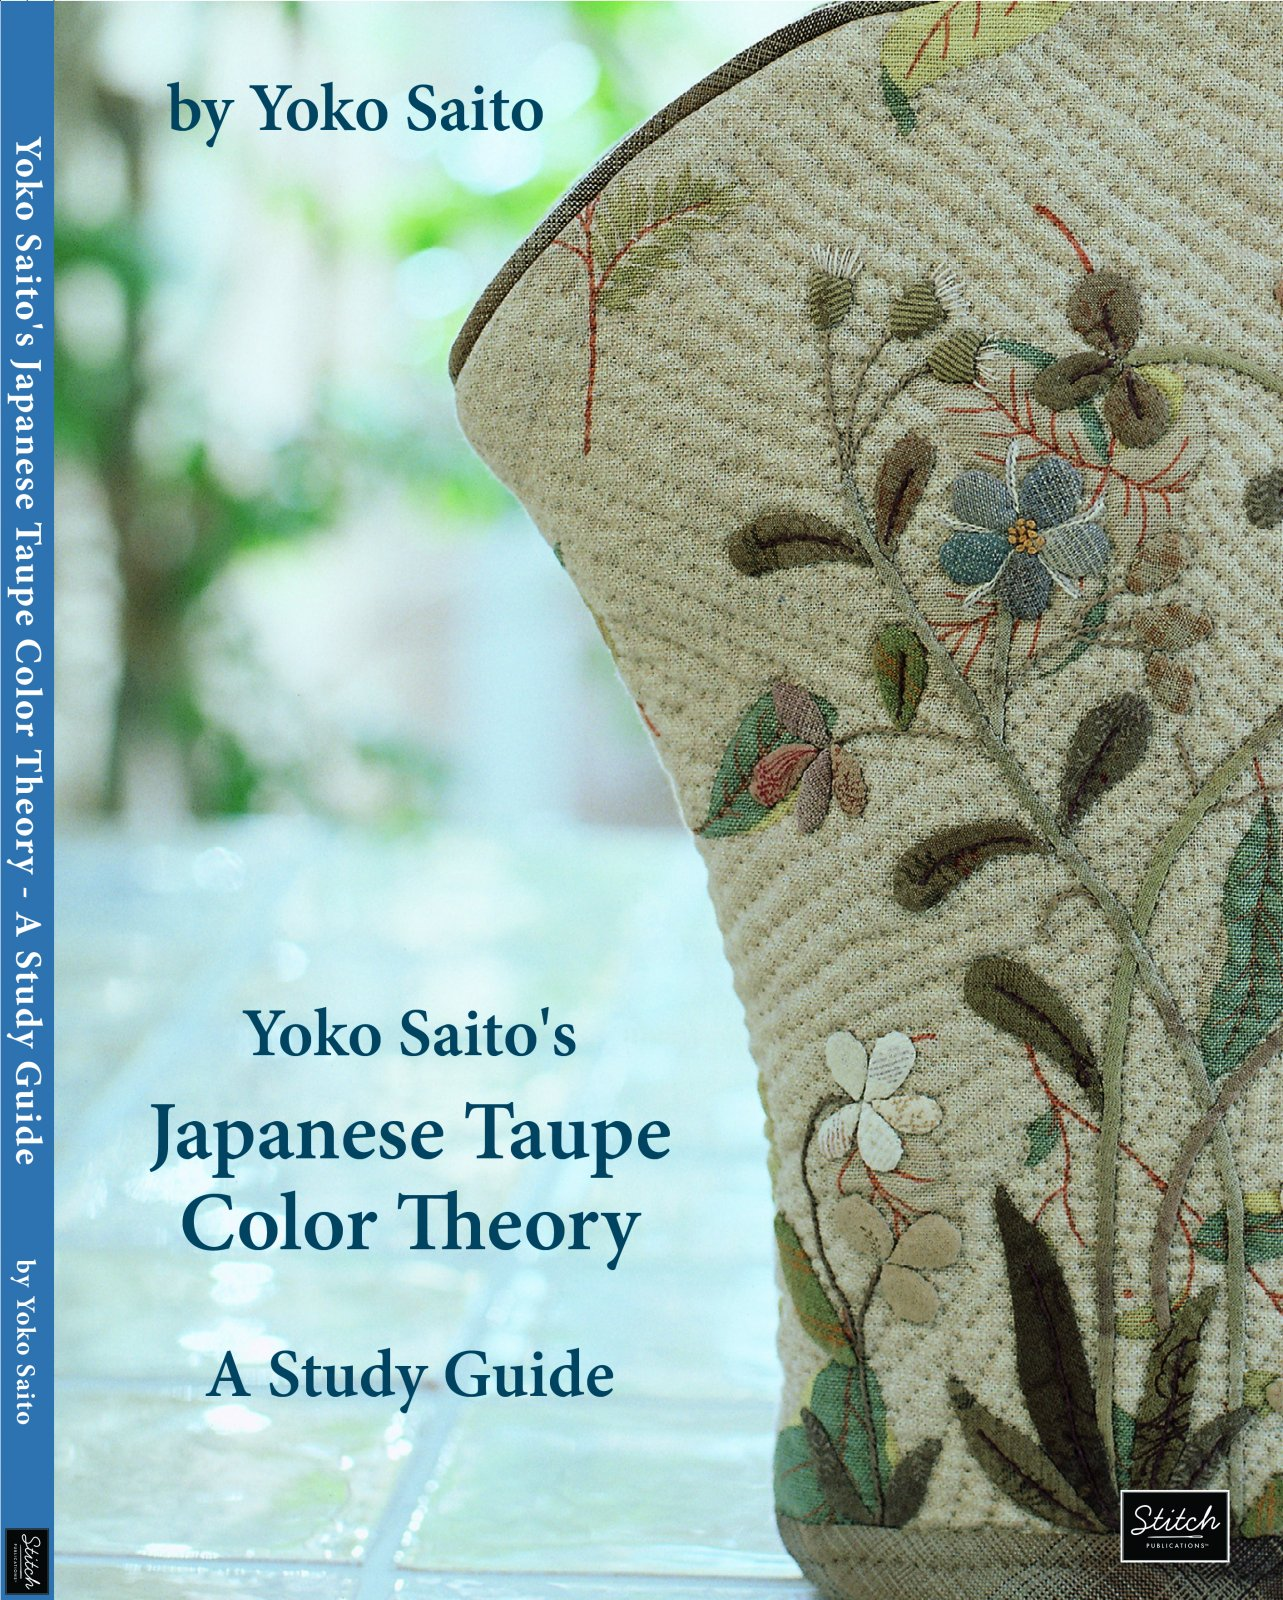 Yoko Saito's Japanese Taupe Color Theory